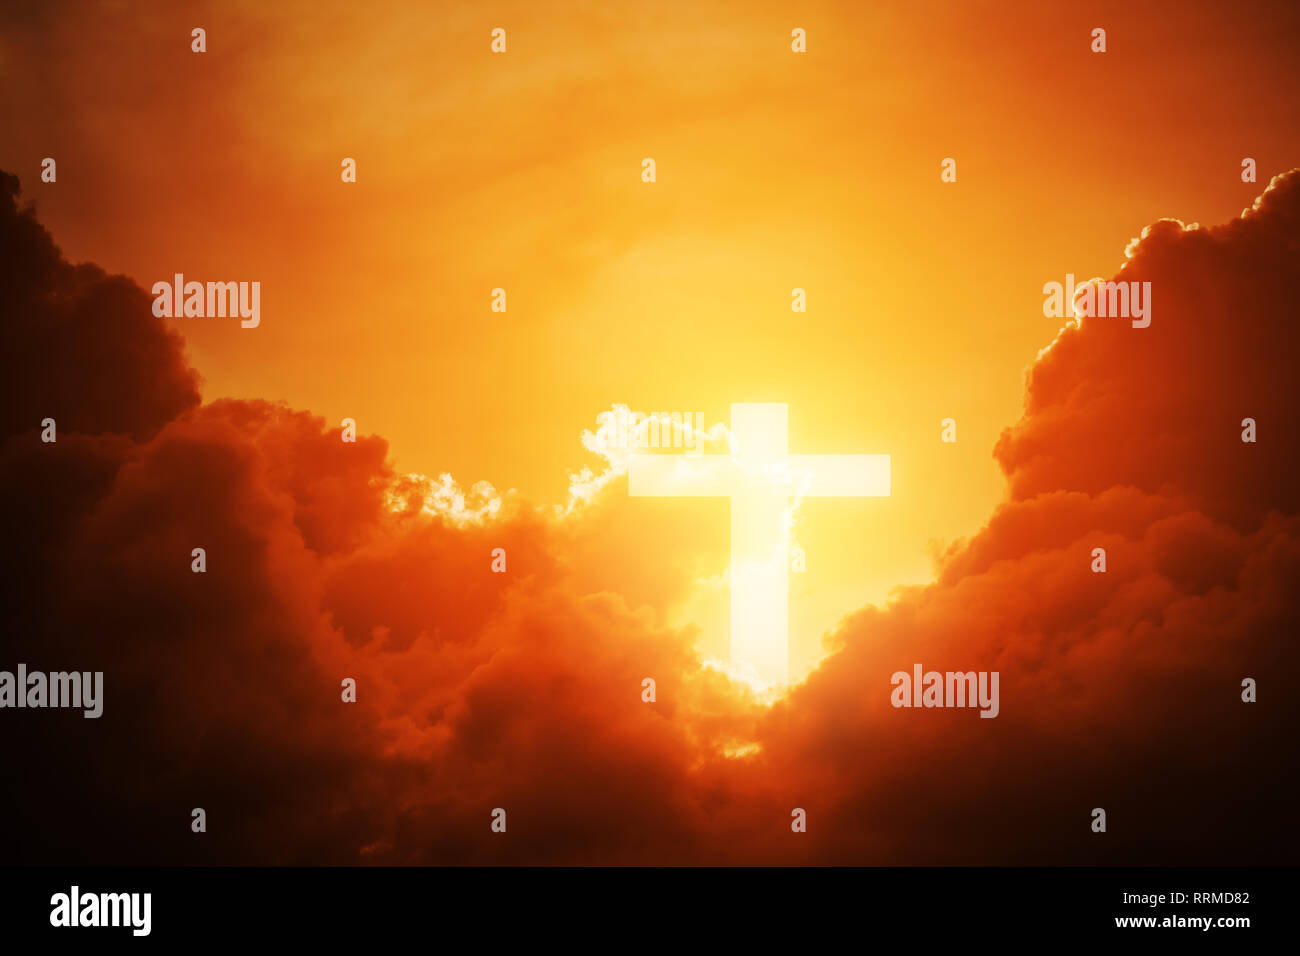 Resurrection 238321330 Shape Background Cross Conceptual God Sky For Worship Symbol Alamy Belief Wood Sunset Clouds Of Stock Christian Over Photo - With A Or God And Religion